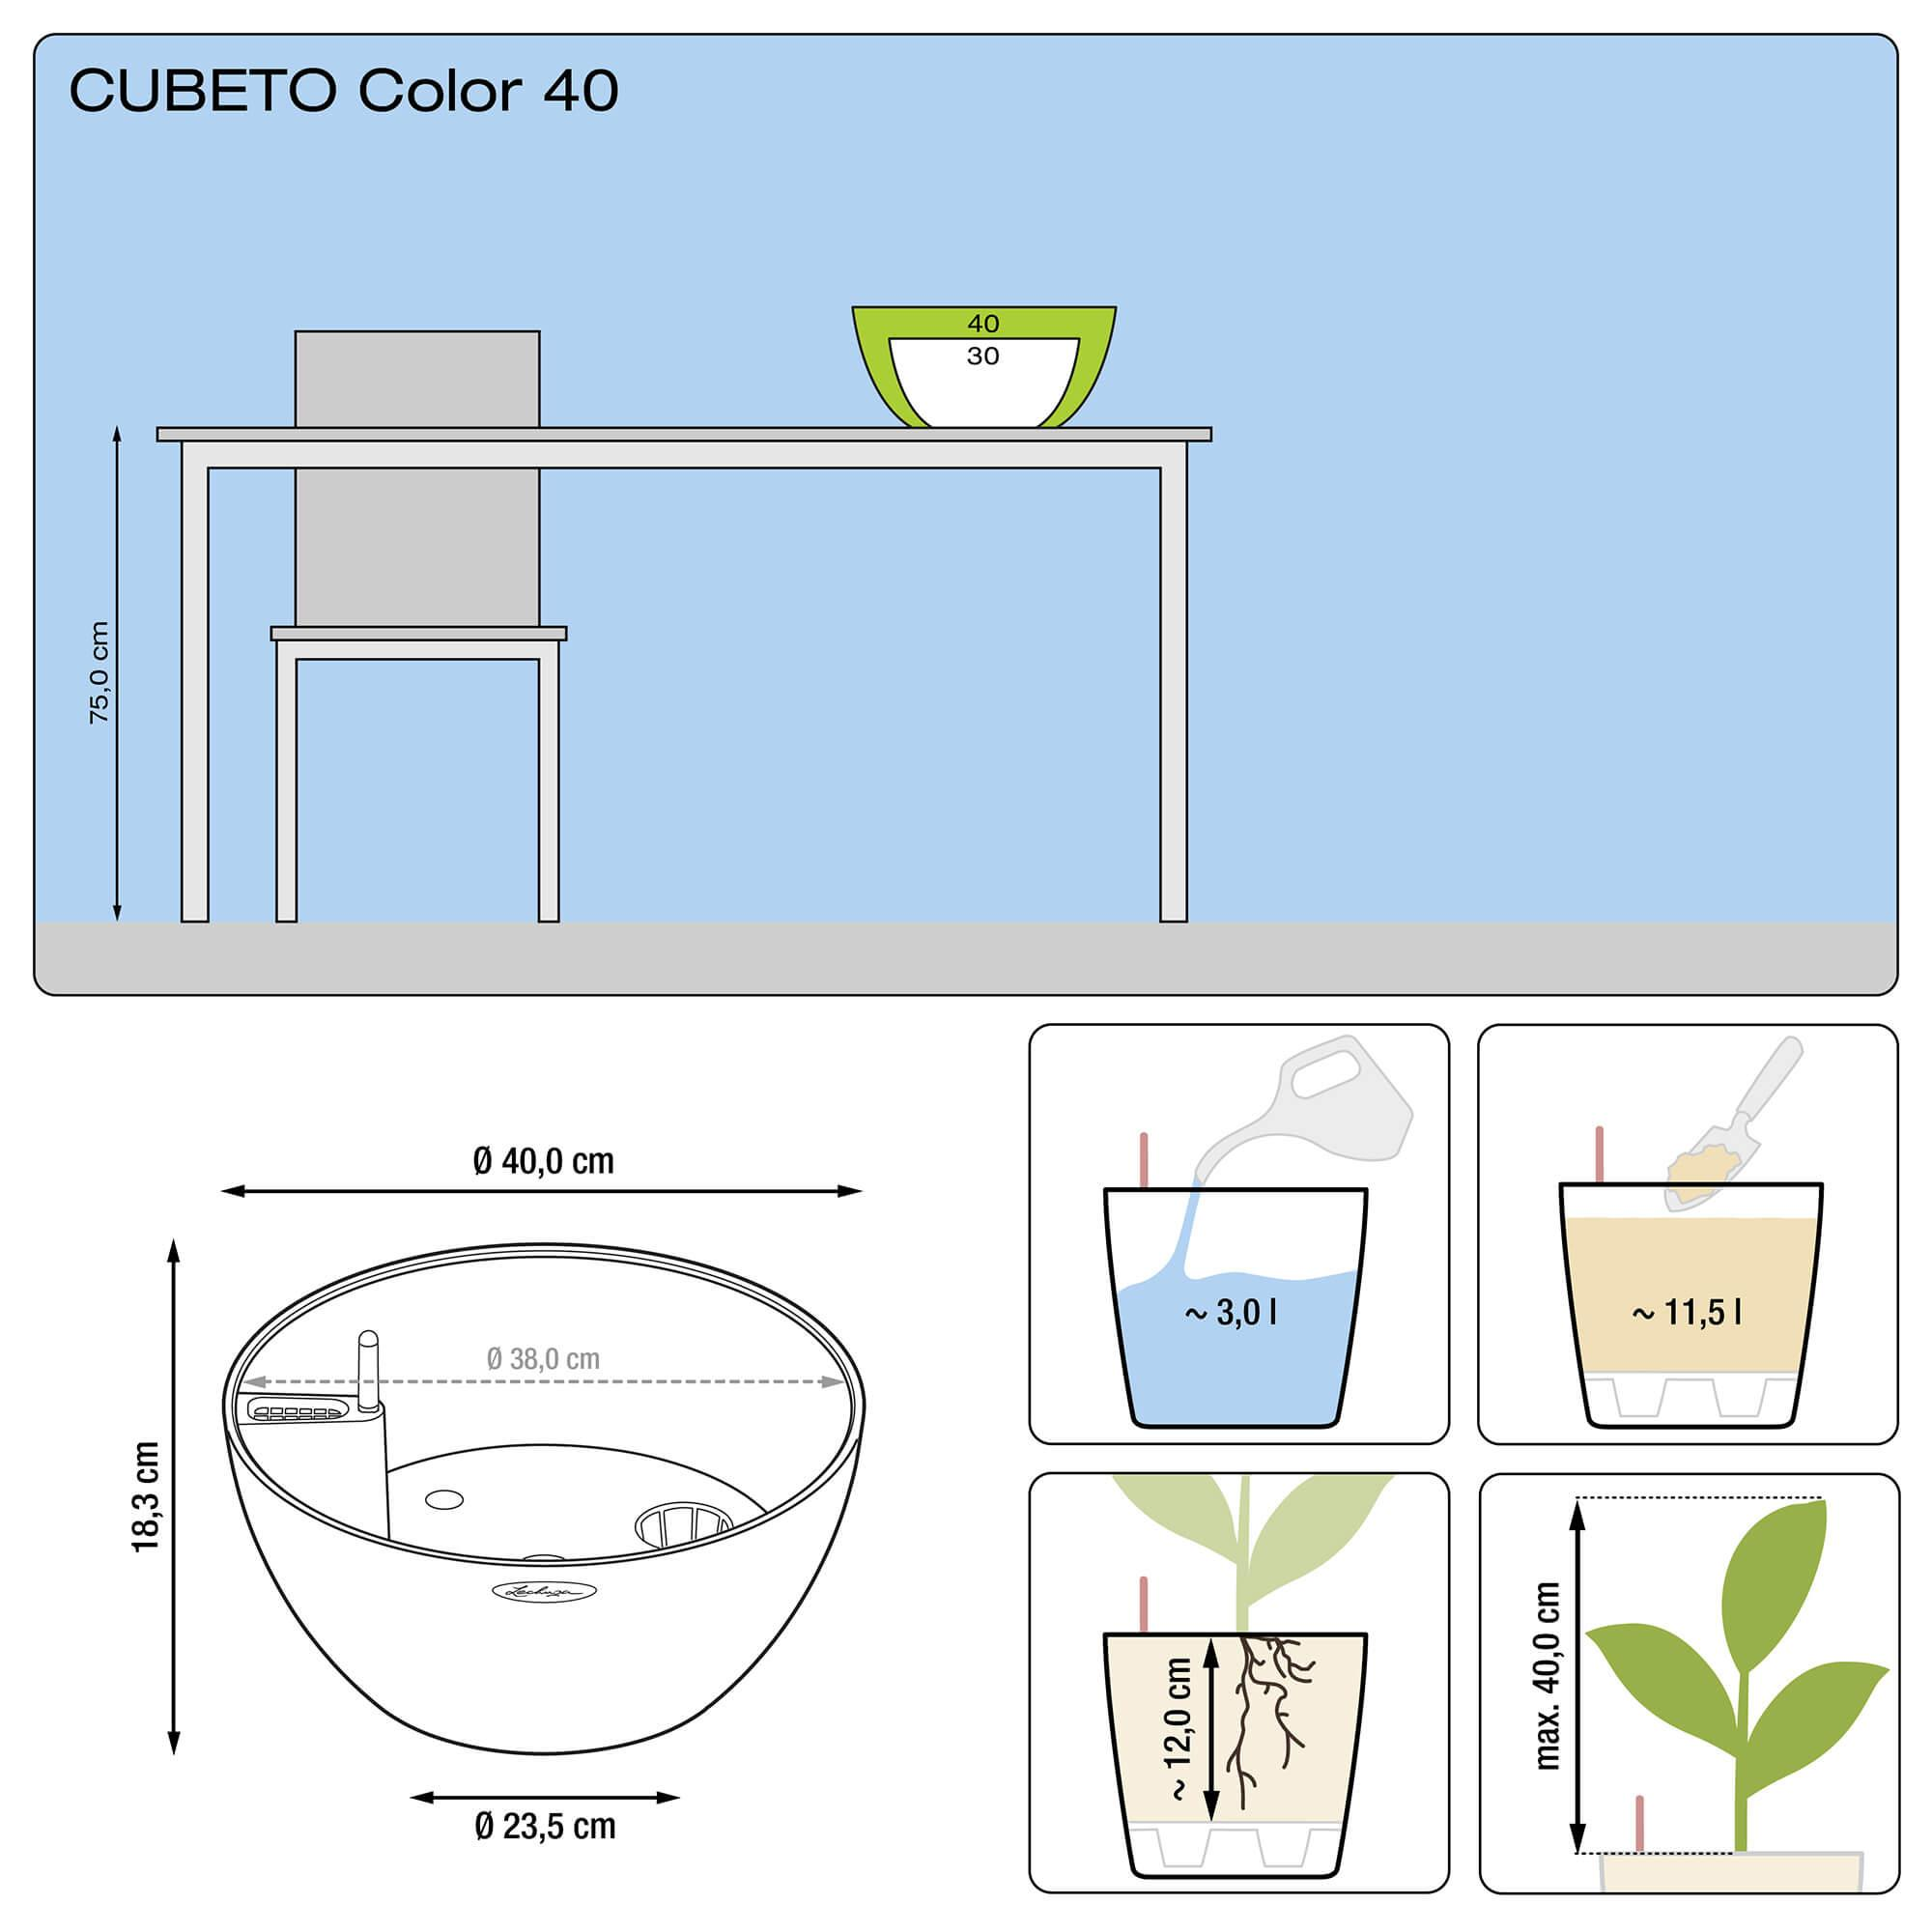 le_cubeto-color40_product_addi_nz